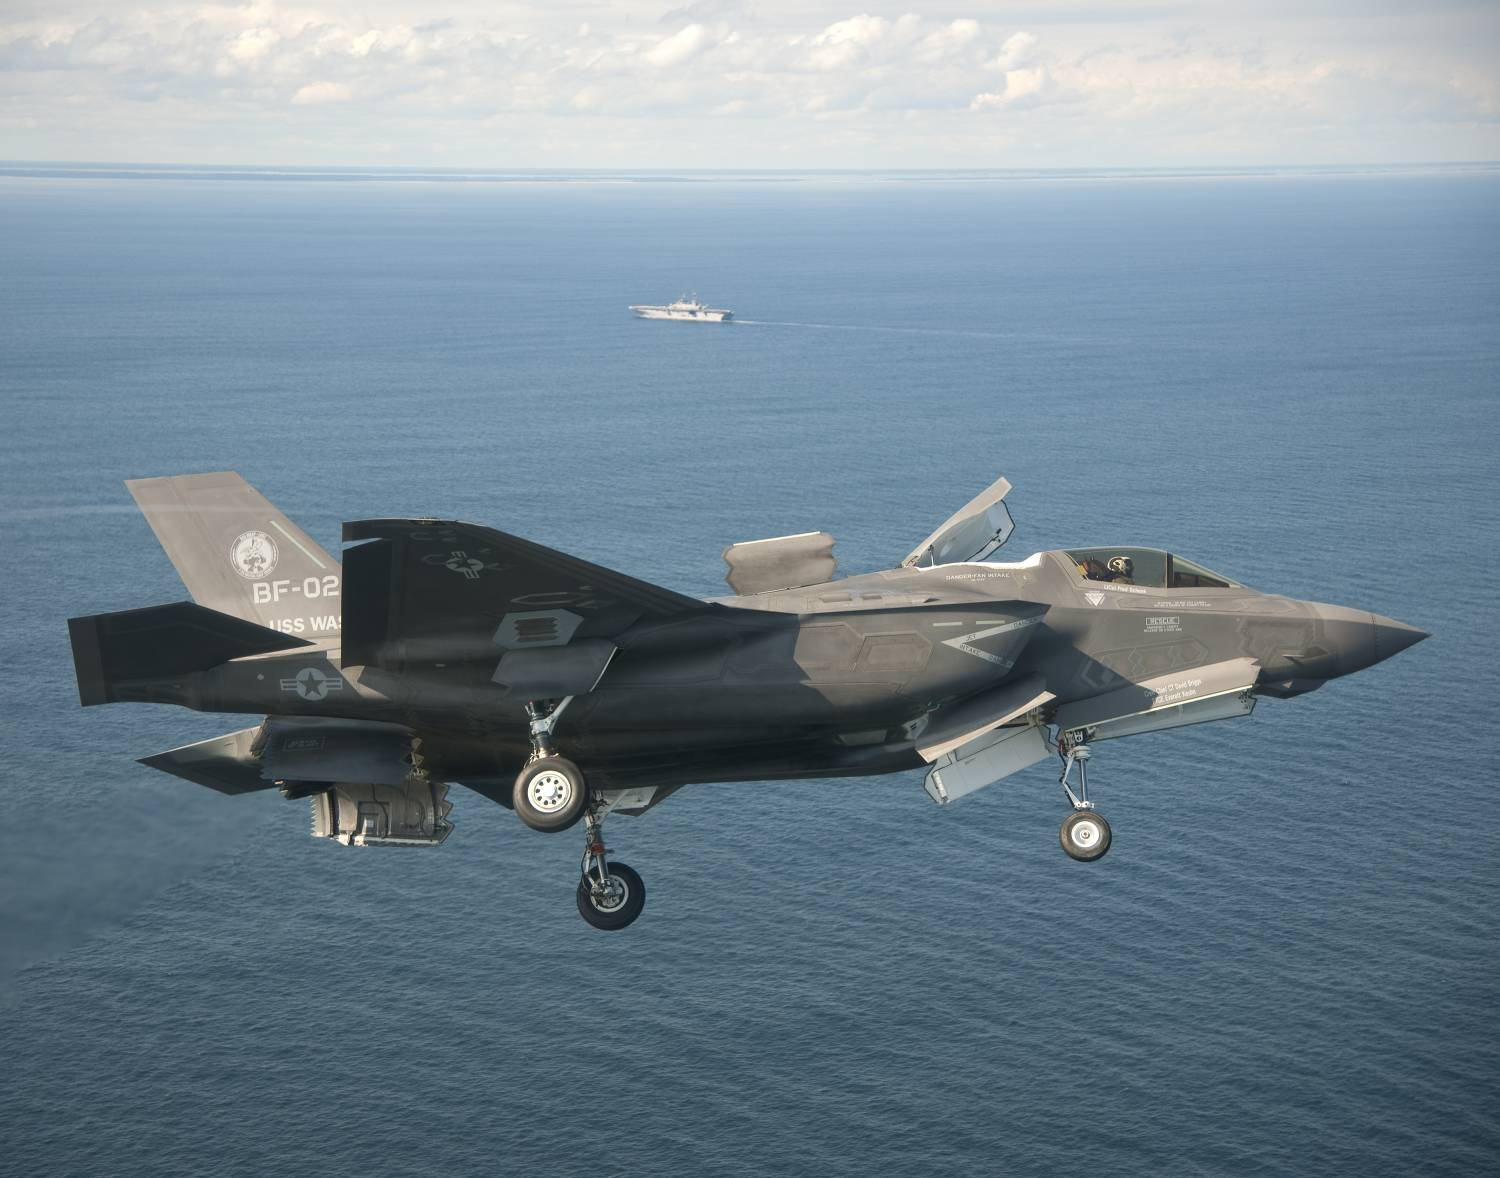 Naval Open Source INTelligence: F-35 in new dogfight over ...